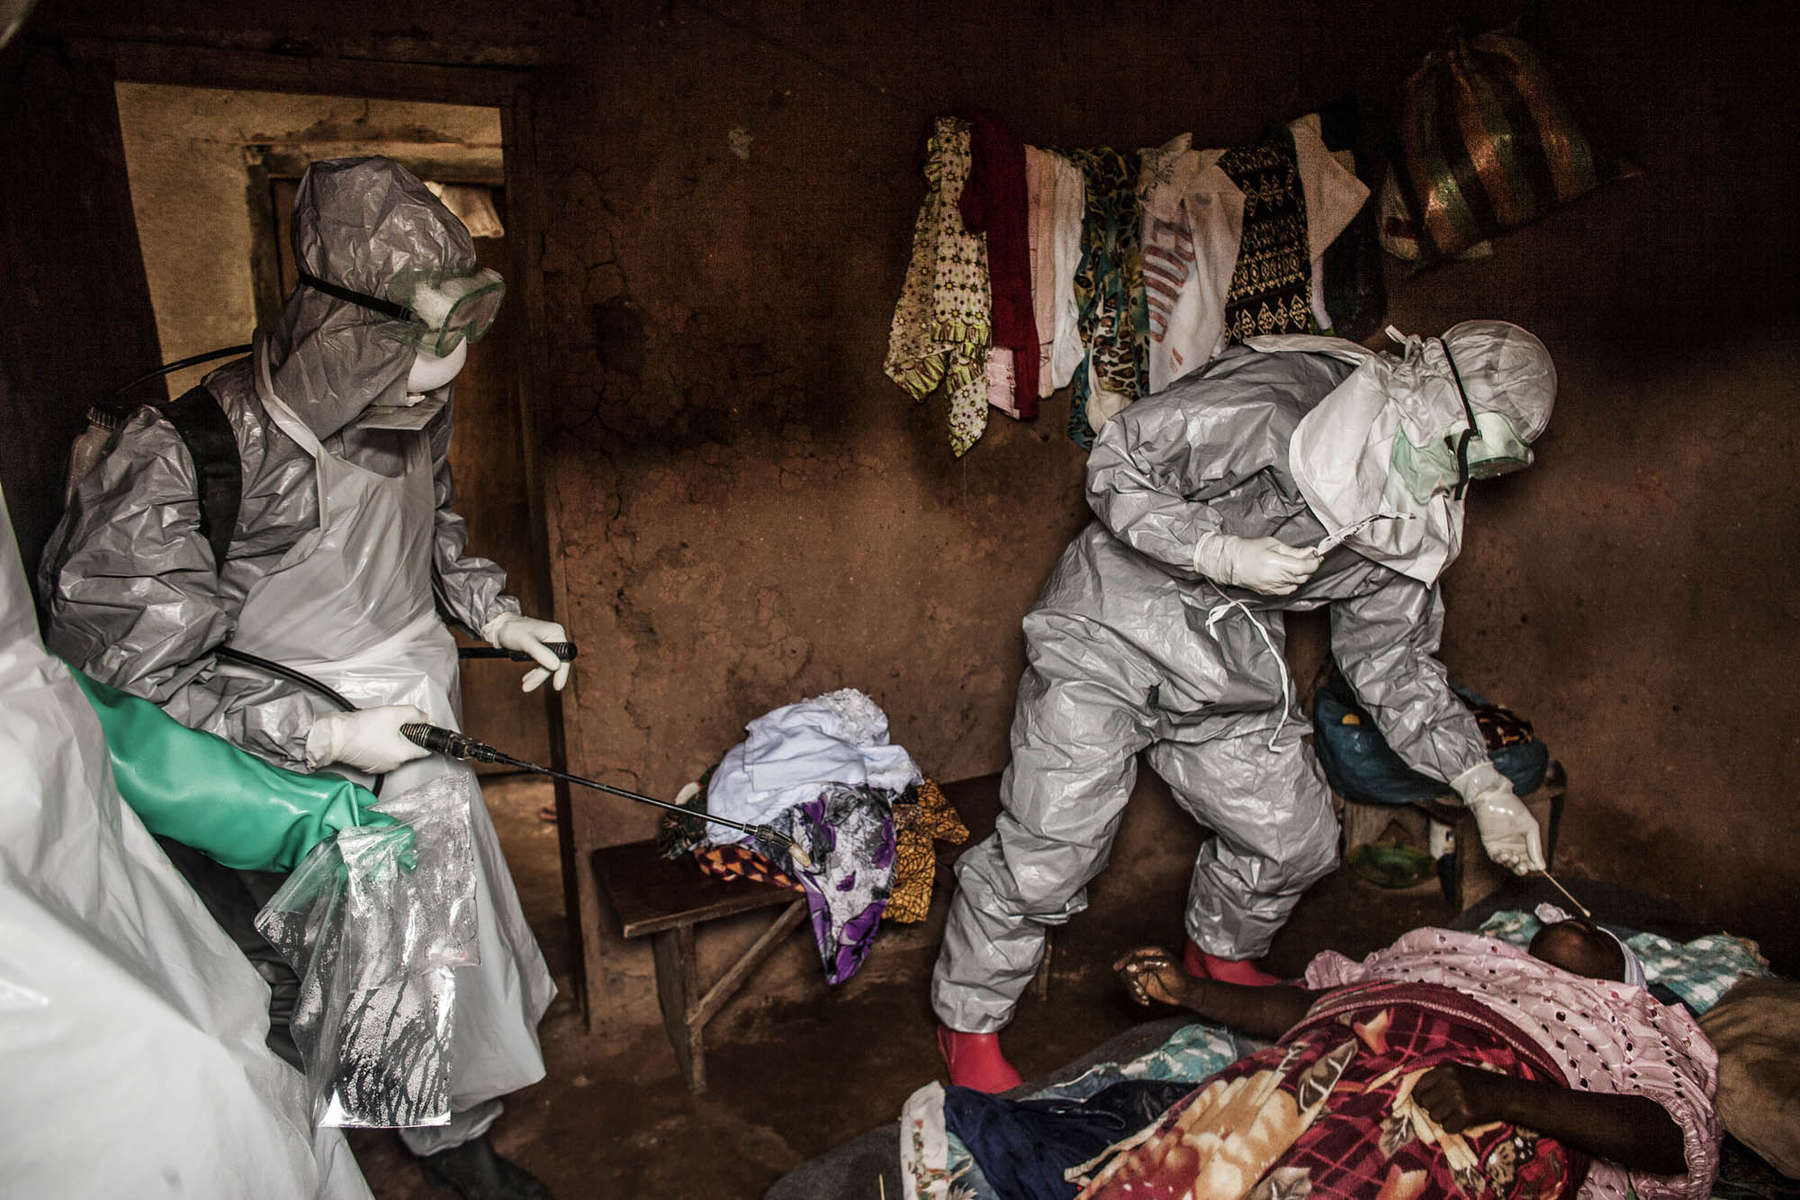 Members of a Red Cross burial team take samples from a   woman suspected of dying of Ebola in the village of Dia on Monday, August 18, 2014. So-called {quote}safe burials,{quote} conducted by the International Federation of the Red Cross, are conducted in accordance with rigorous safety procedures. The dead bodies of Ebola victims are extremely infectious.(Pete Muller/Prime for the Washington Post)